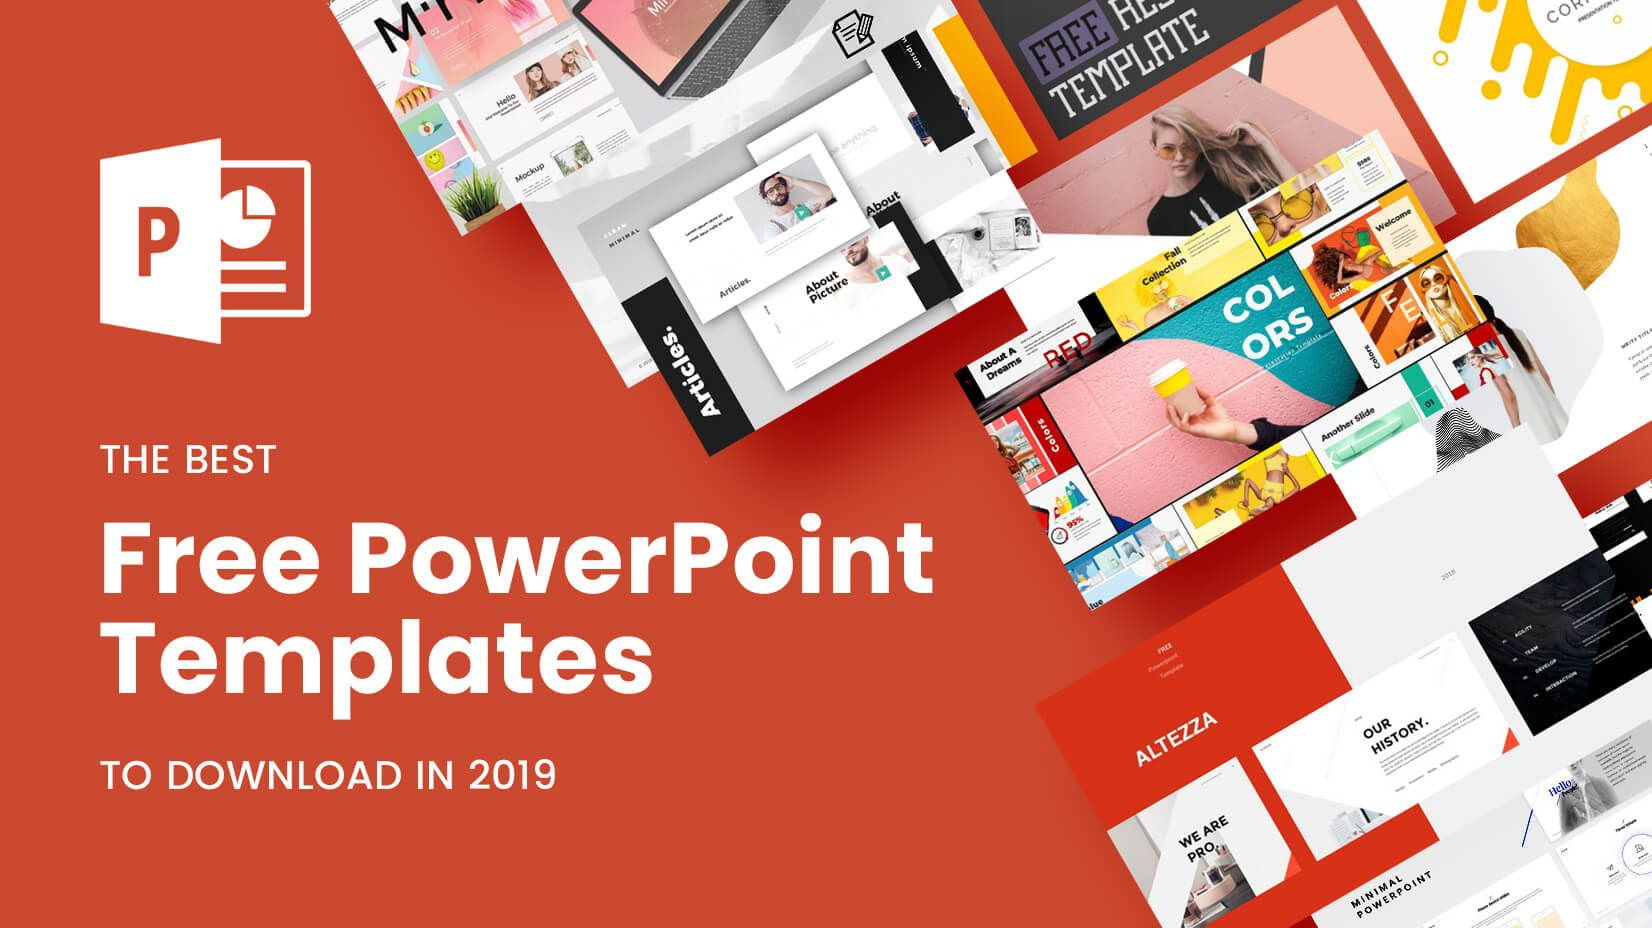 008 Formidable Free Powerpoint Template Design Highest Quality  For Student Food BusinesFull